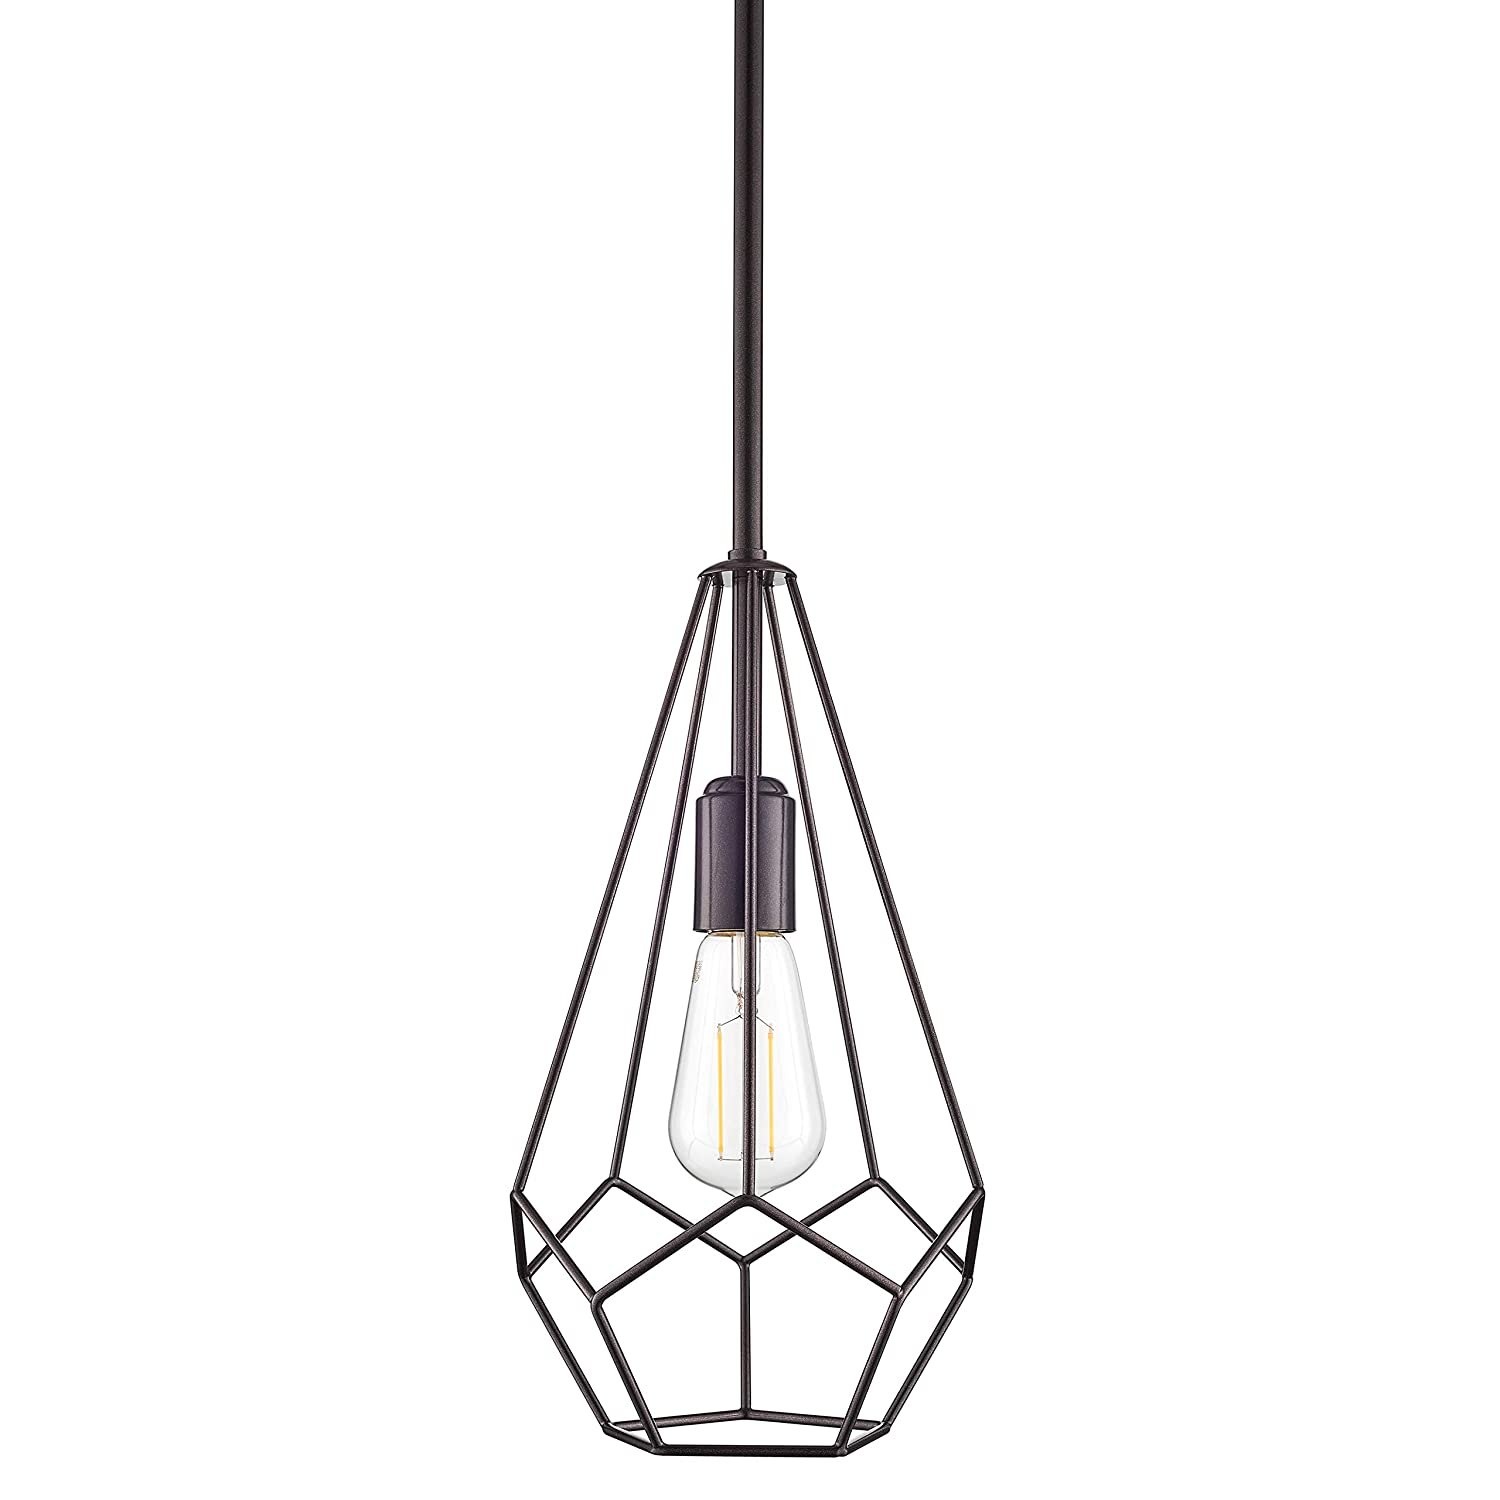 Disciplined Industrial Vintage Iron Cage Hanging Ceiling Pendant Light Holder Lamp Shade New Buy One Give One Lights & Lighting Lamp Covers & Shades